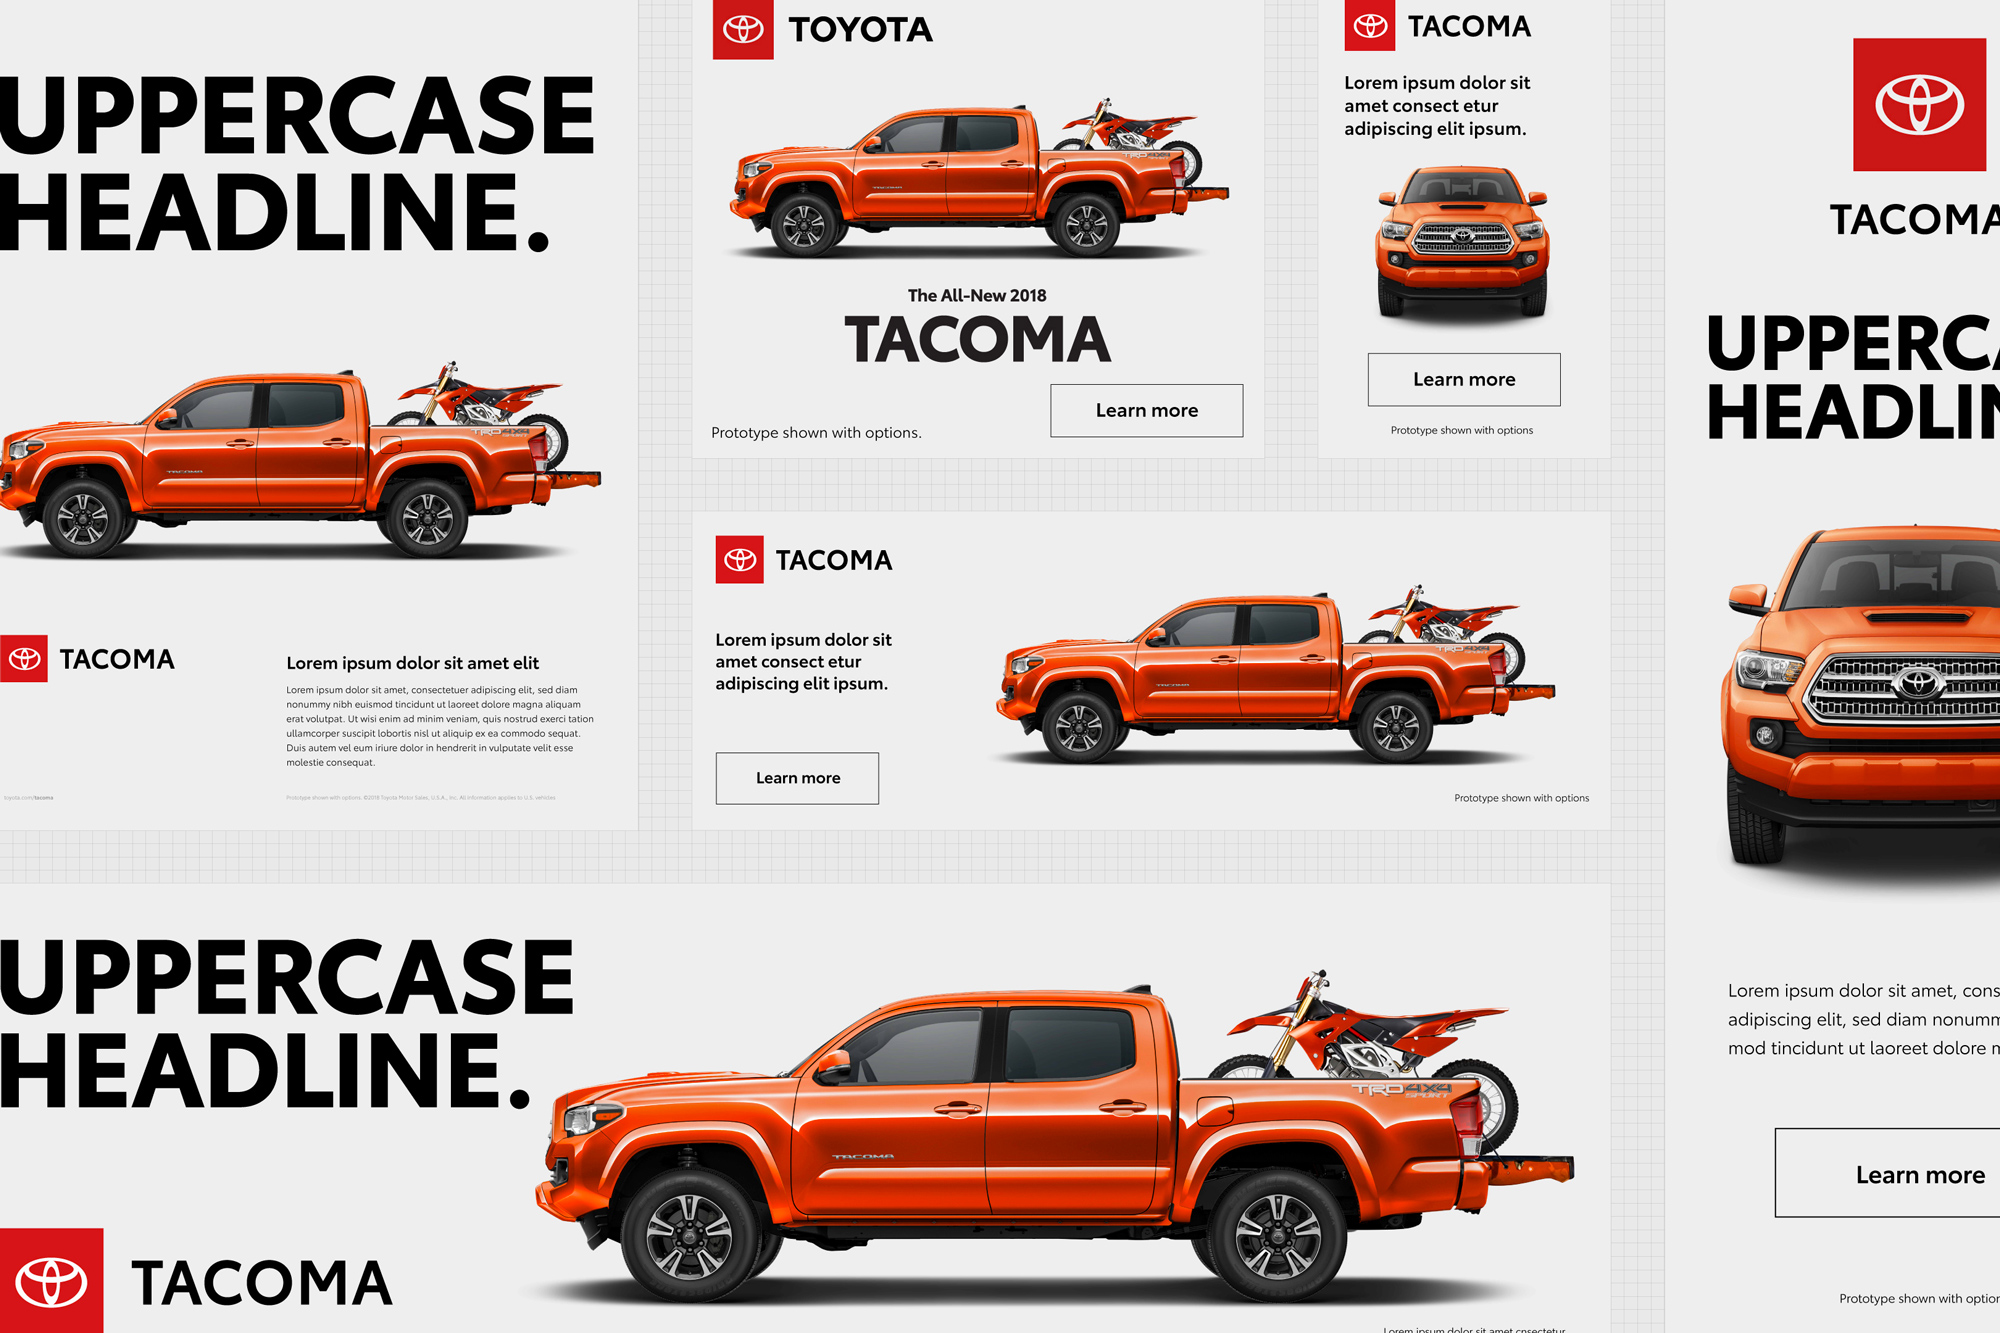 New Logo and Identity for Toyota